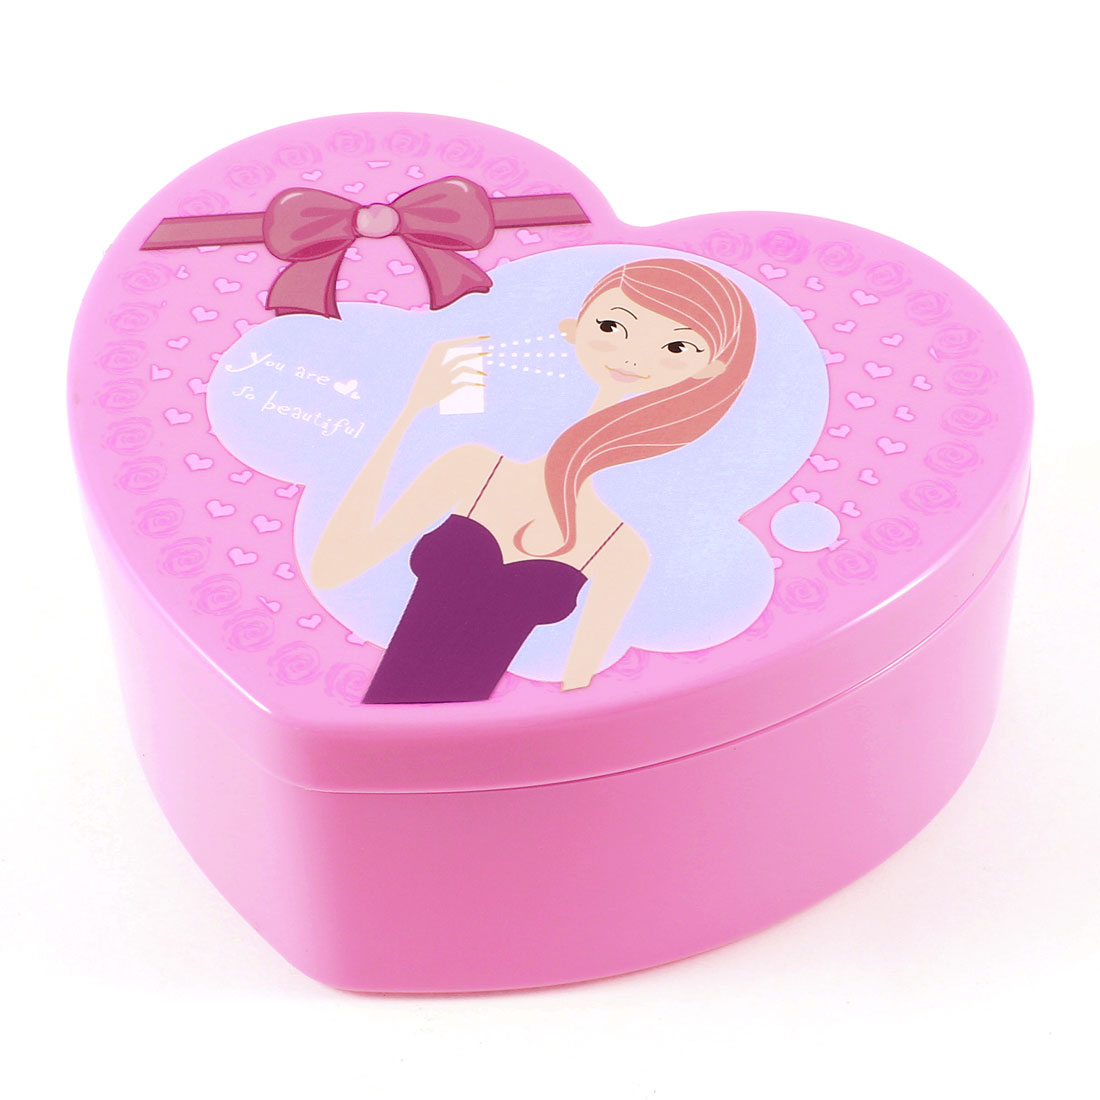 Ladies Fashion Girl Print Heart Shape Plastic Cosmetic Case Storage Box Pink